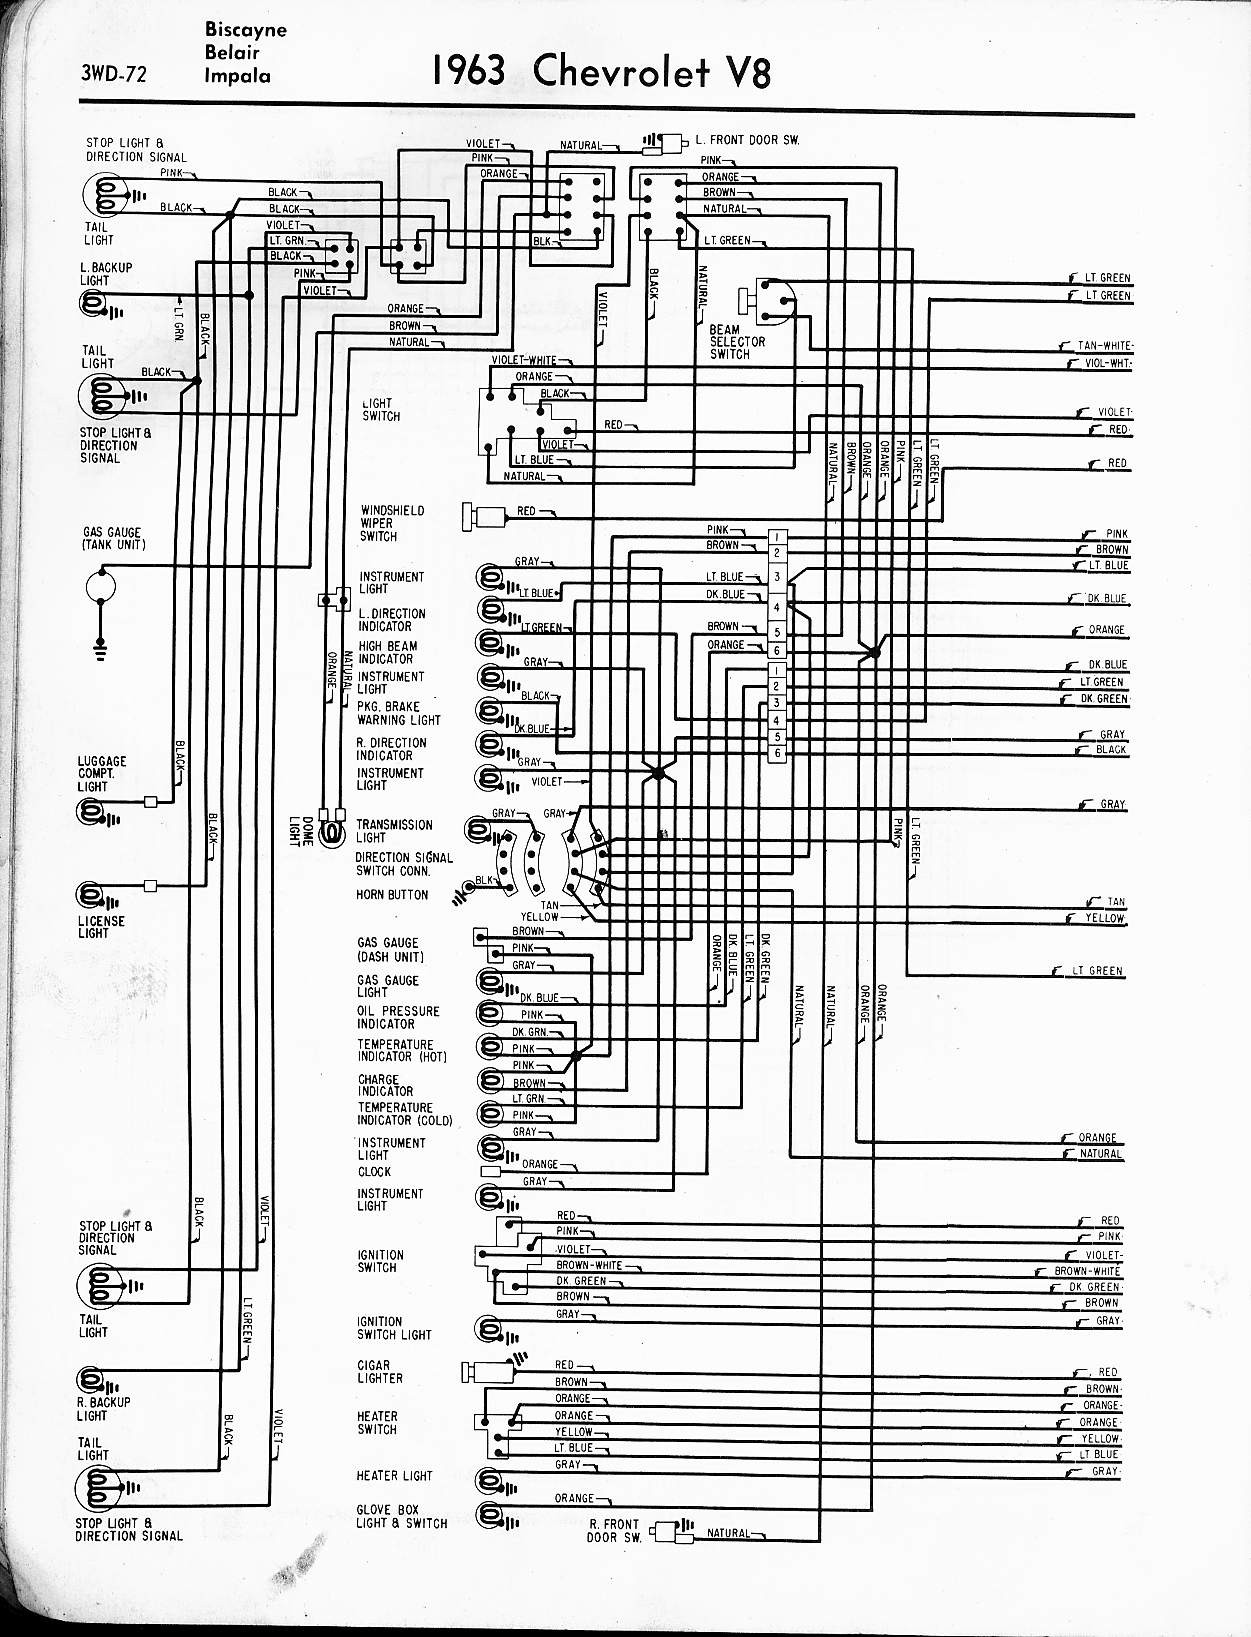 1962 Chevy Truck Wiring Diagram 1960 Chevrolet Impala Wiring Diagram as Well 1955 Chevy Wiring Of 1962 Chevy Truck Wiring Diagram